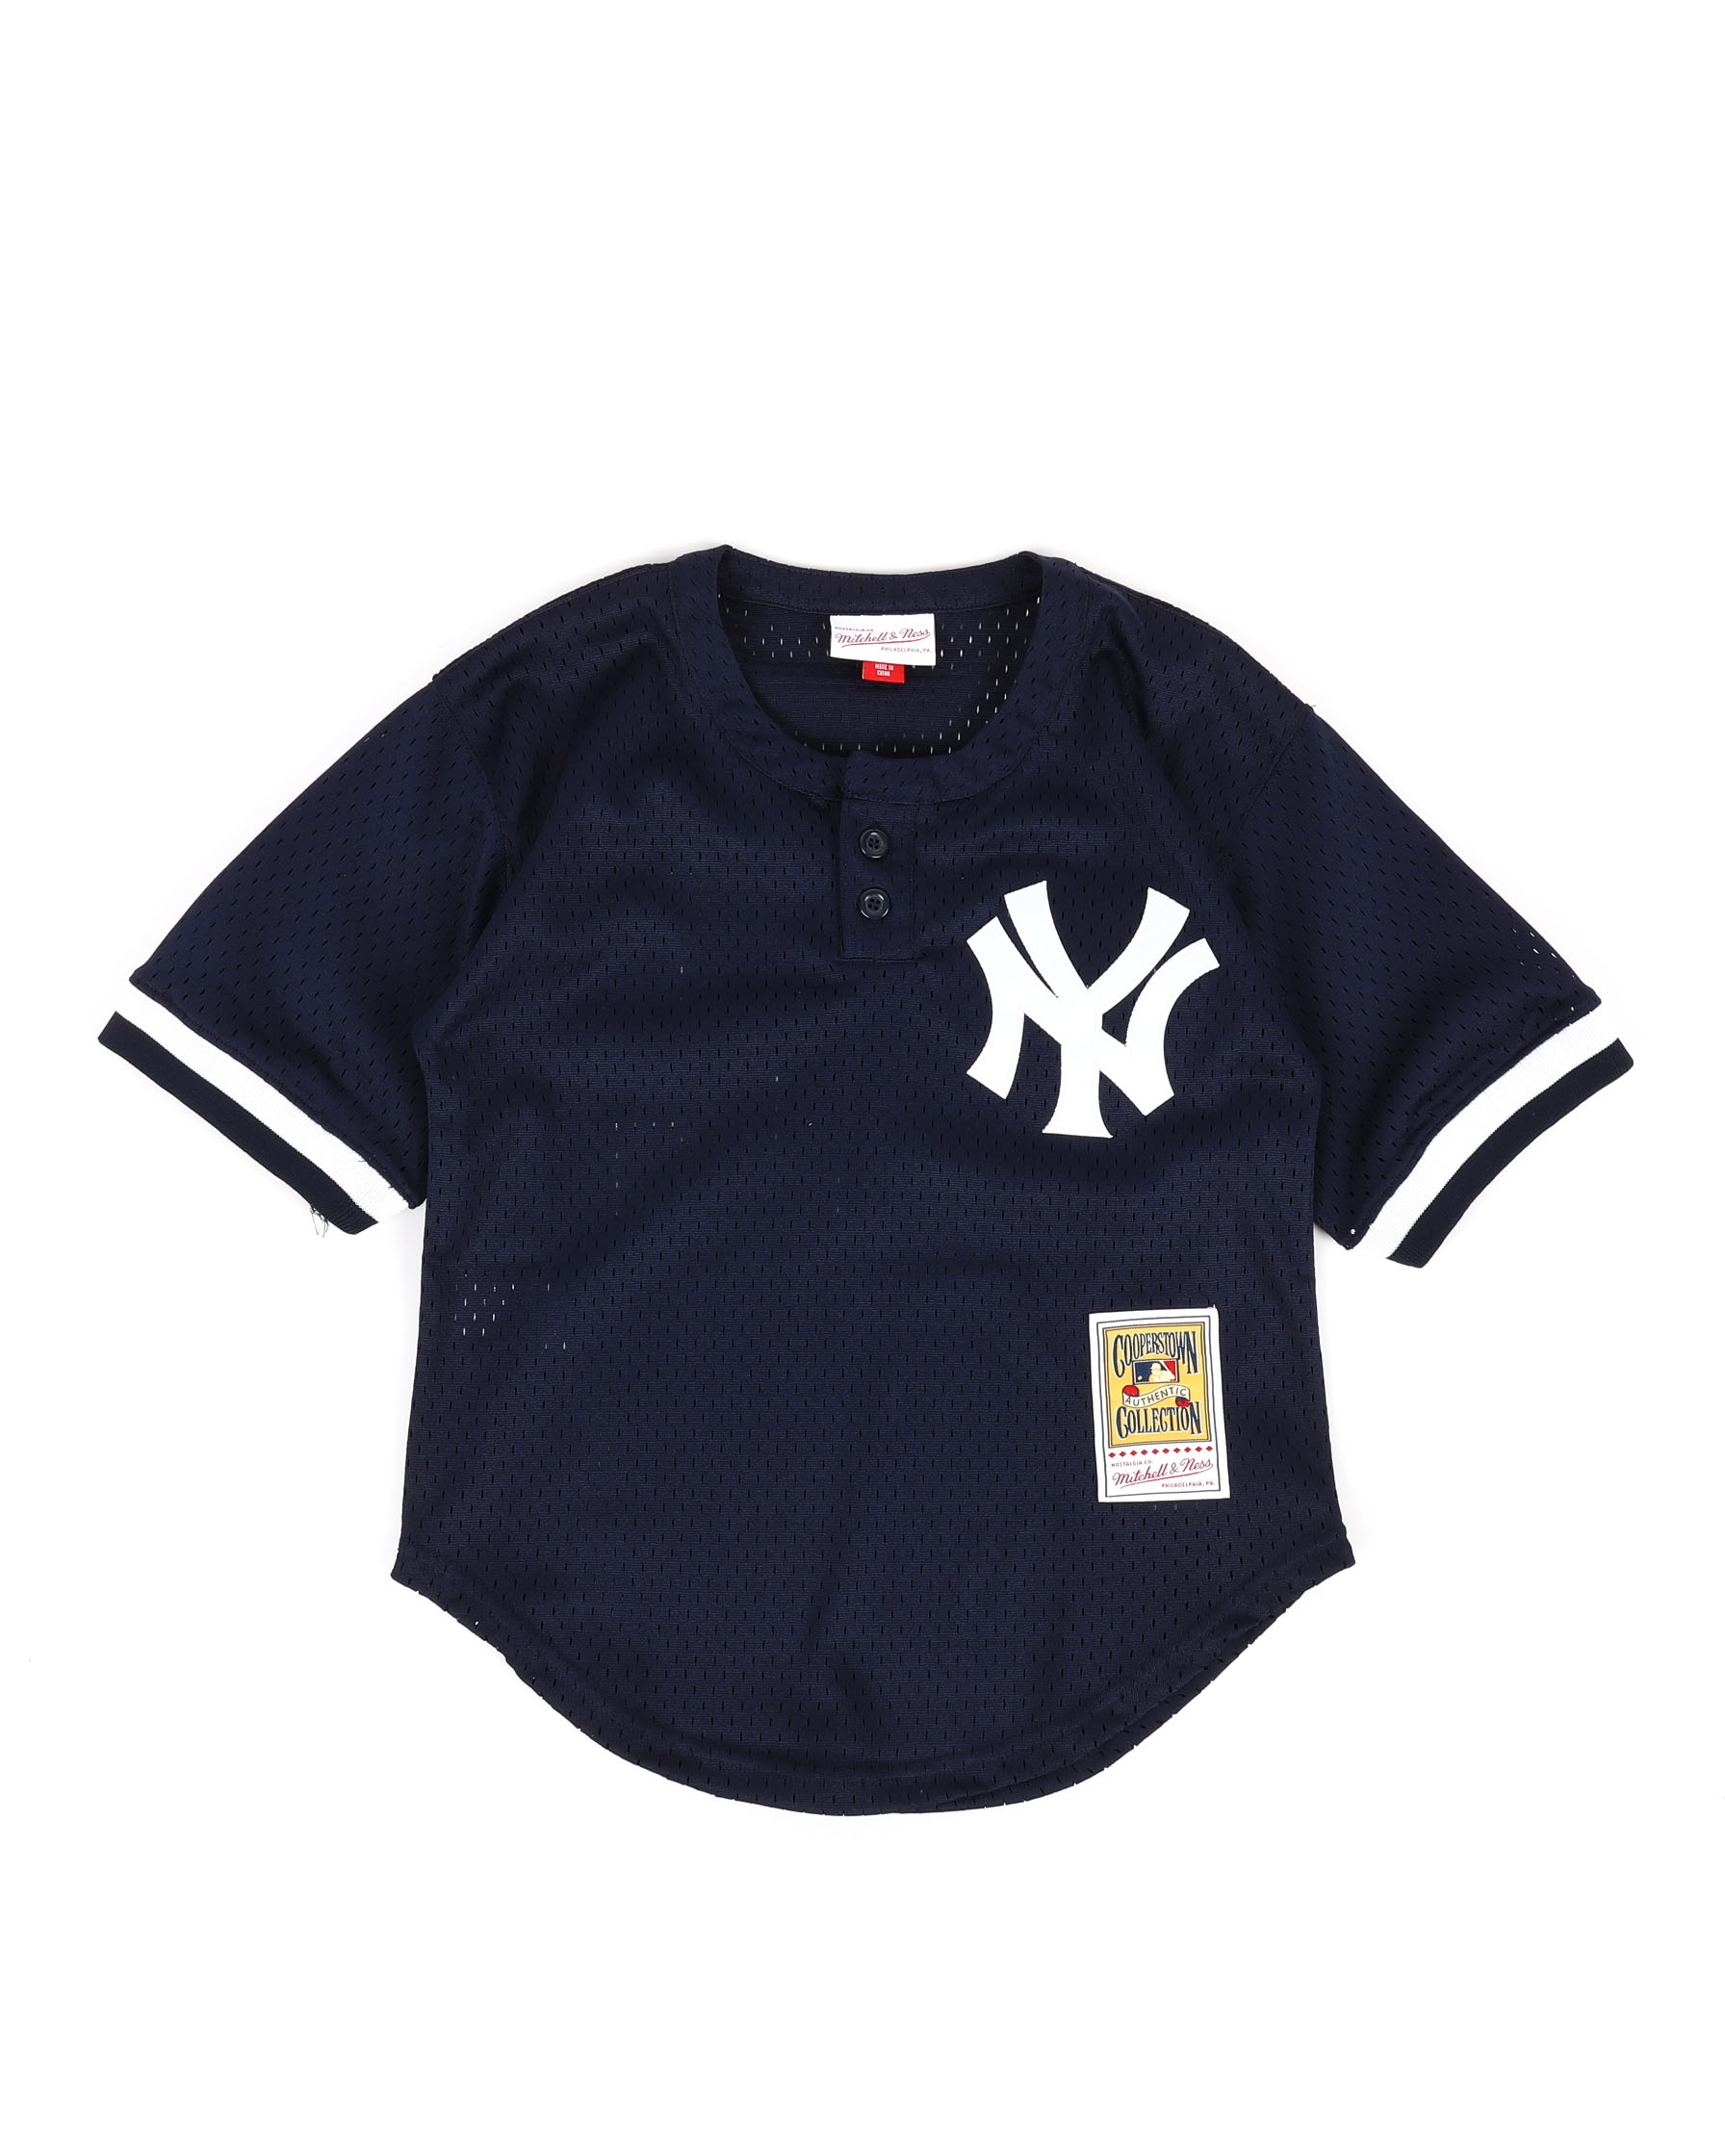 the latest 7b0ff 32b5d Buy Authentic BP Jersey Mariano Rivera (8-20) Boys Tops from ...